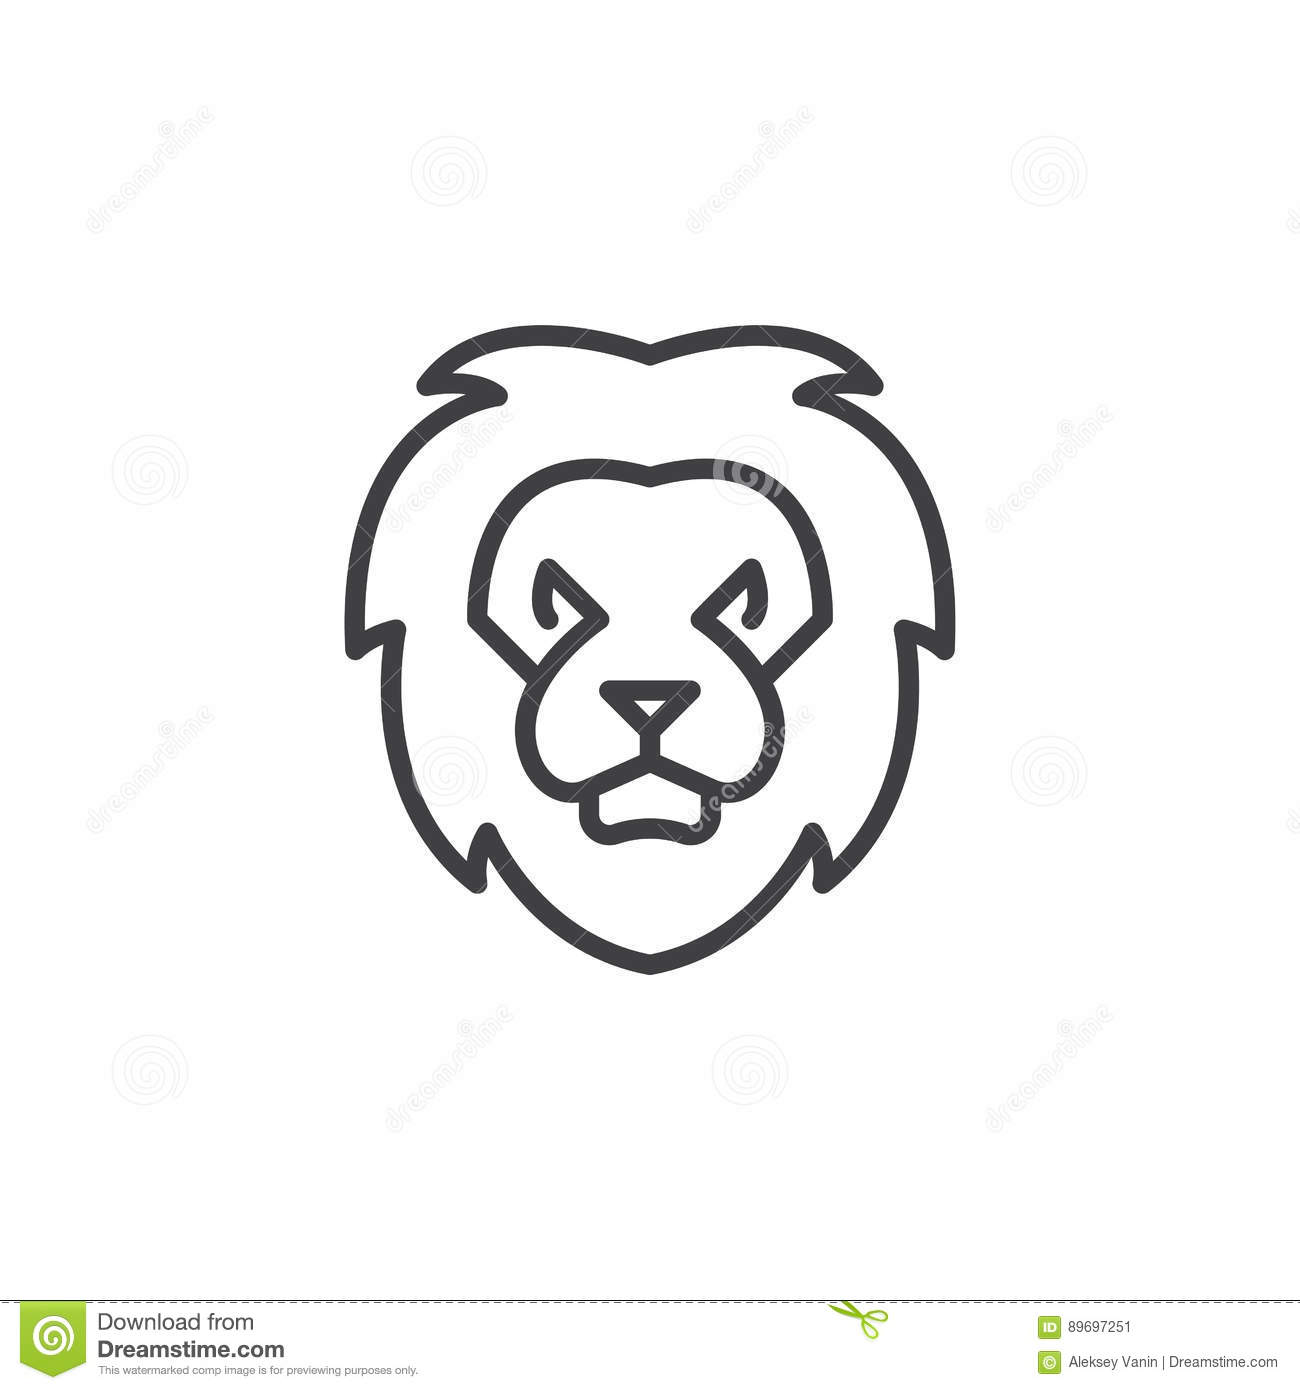 Lion Outline Face Stock Illustrations 1 203 Lion Outline Face Stock Illustrations Vectors Clipart Dreamstime Lion face outline lion face outline tattoo best photos of lion outline. dreamstime com